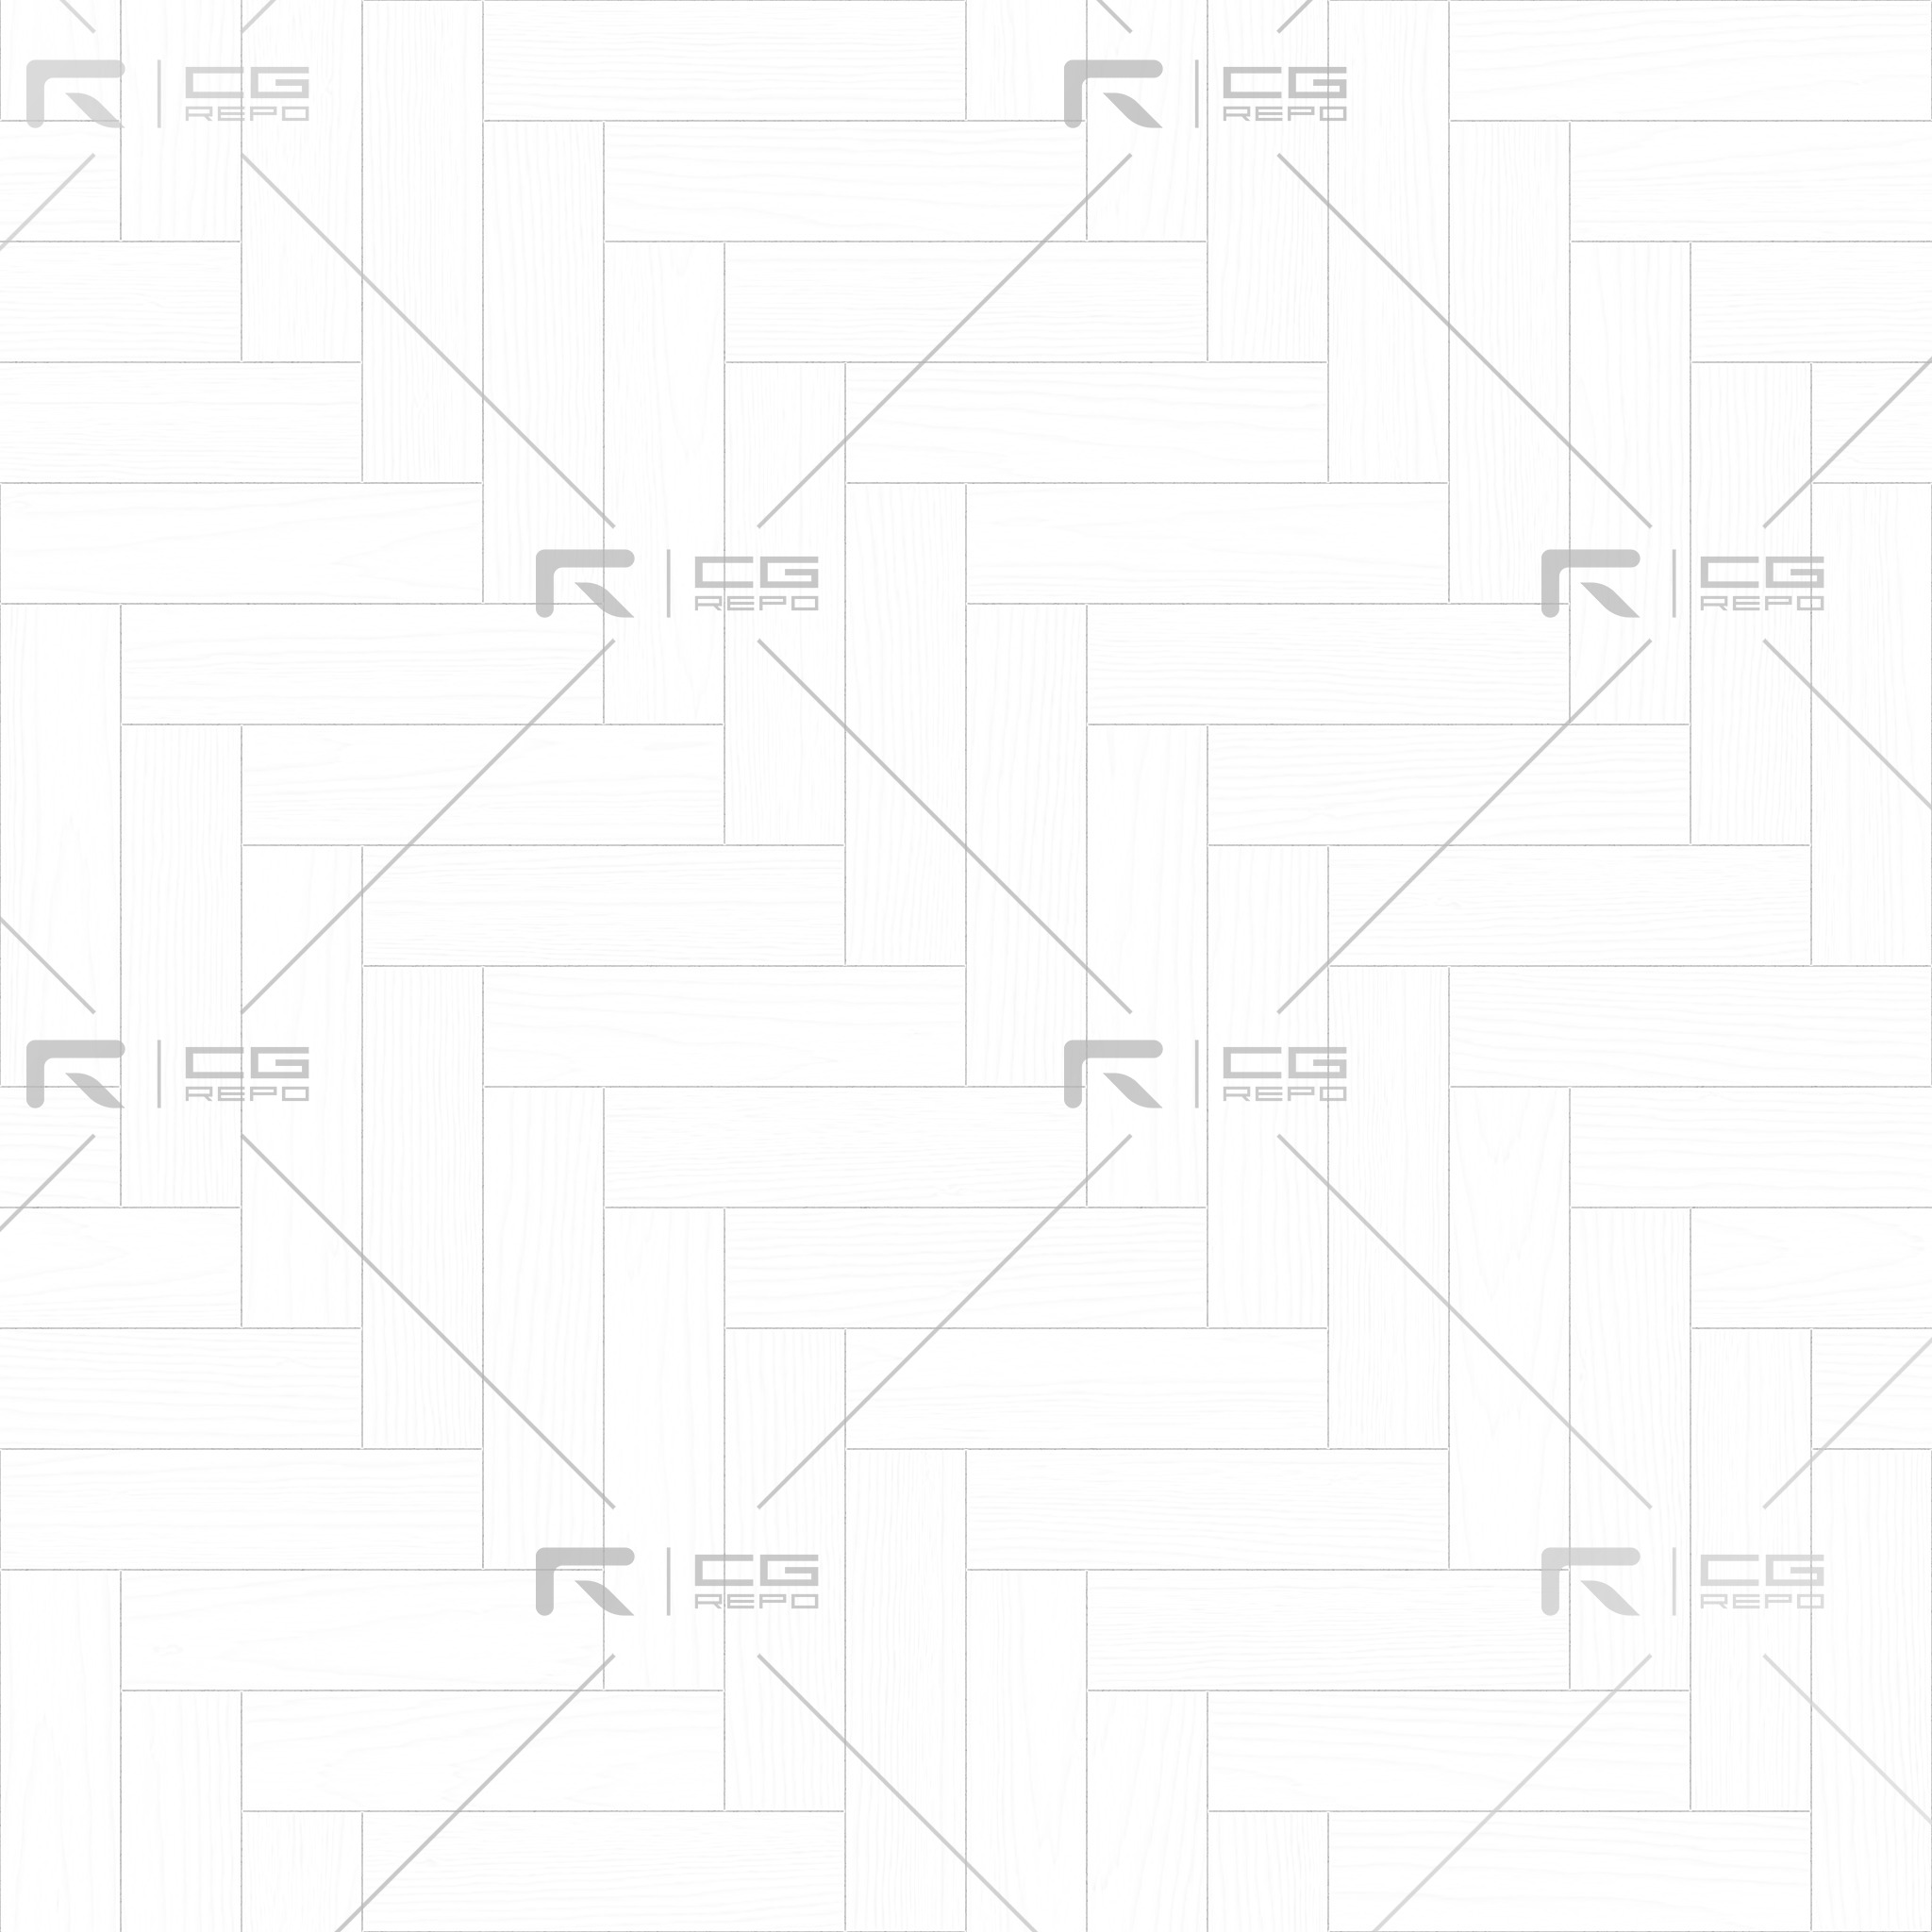 Walnut European Dark Herringbone Ambient Occlusion Texture